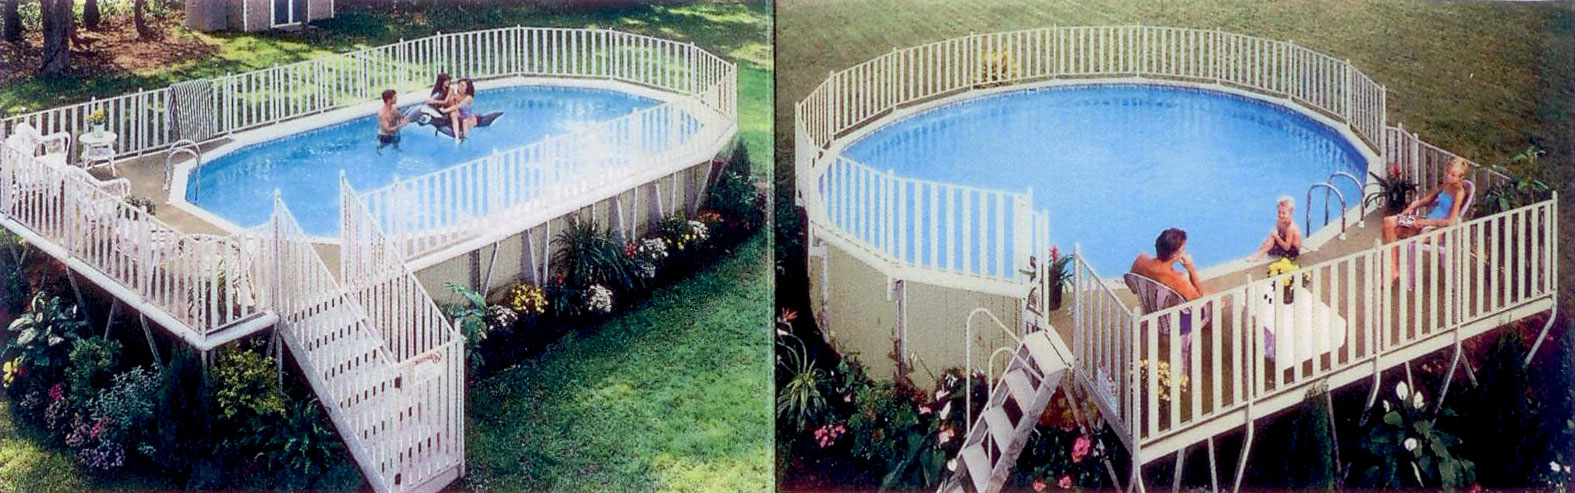 Wilbar Pools Aquavita Pools Above Ground In Ground